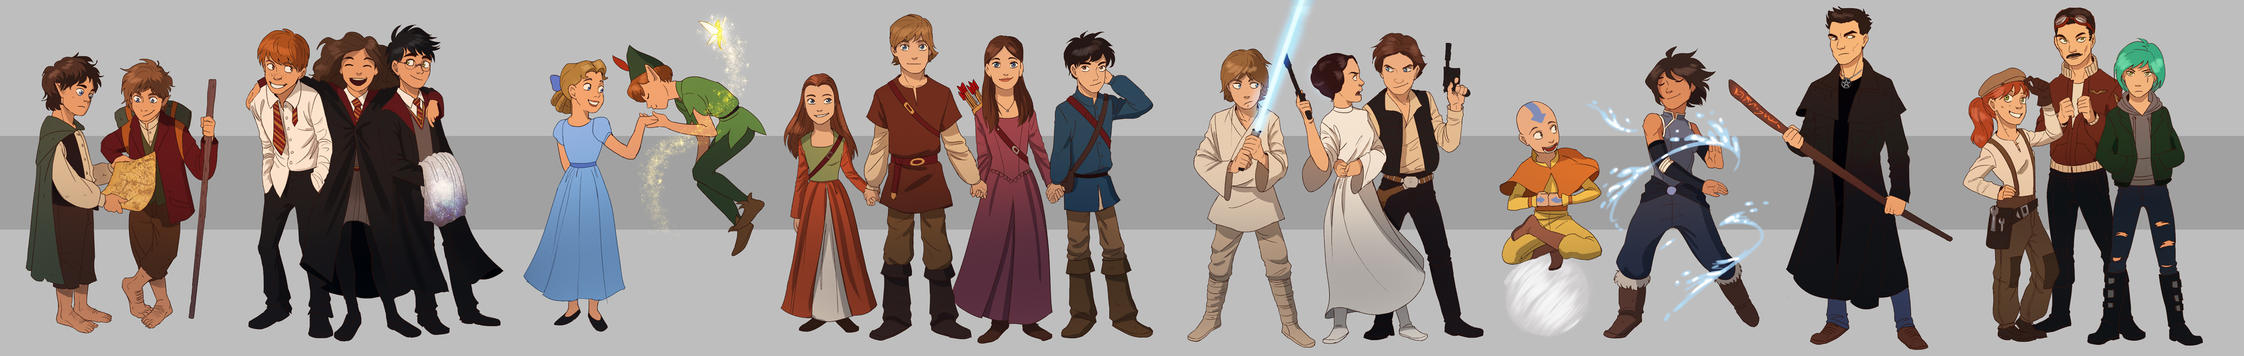 Commission: The Adventurers by Detkef